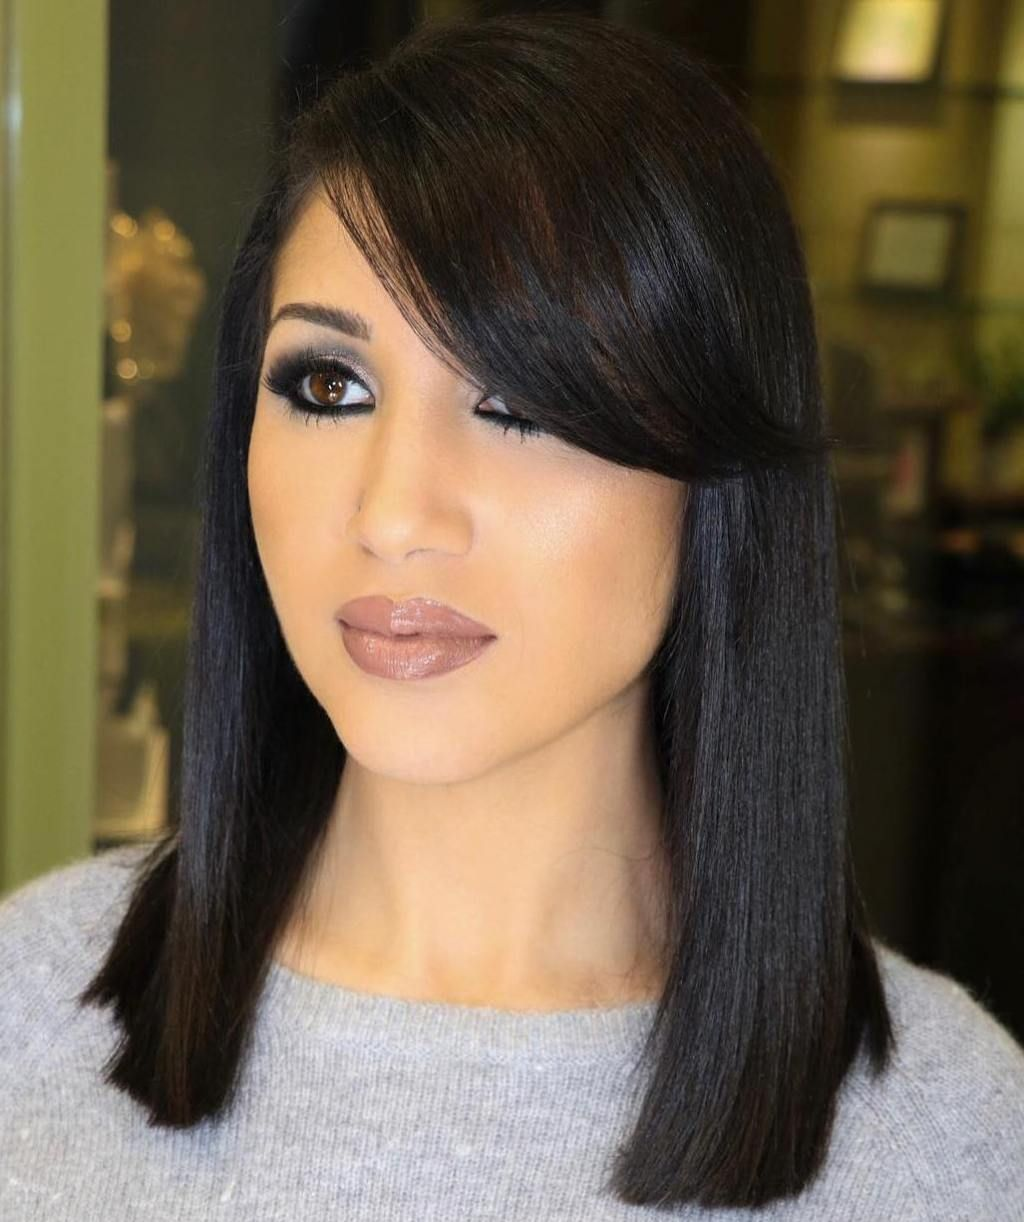 20 Modern Ways To Style A Long Bob With Bangs In 2020 Lob Haircut With Bangs Side Bangs Hairstyles Bob With Bangs